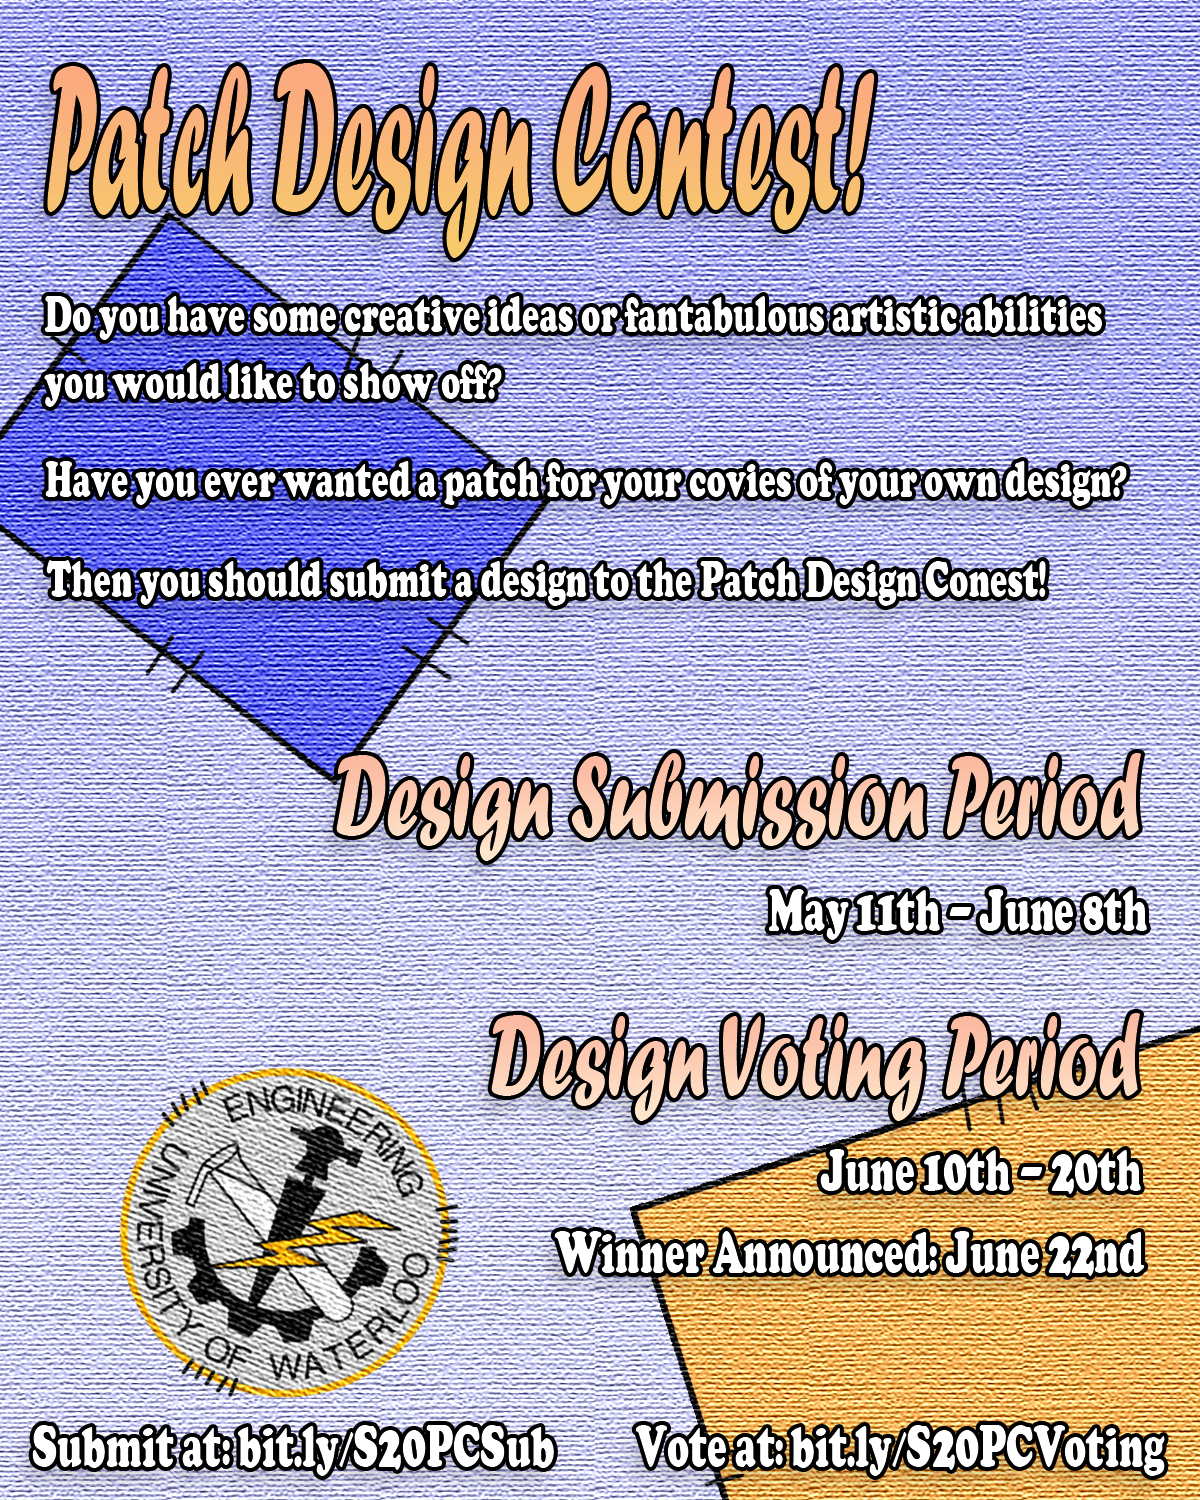 EnSoc Patch Design Contest